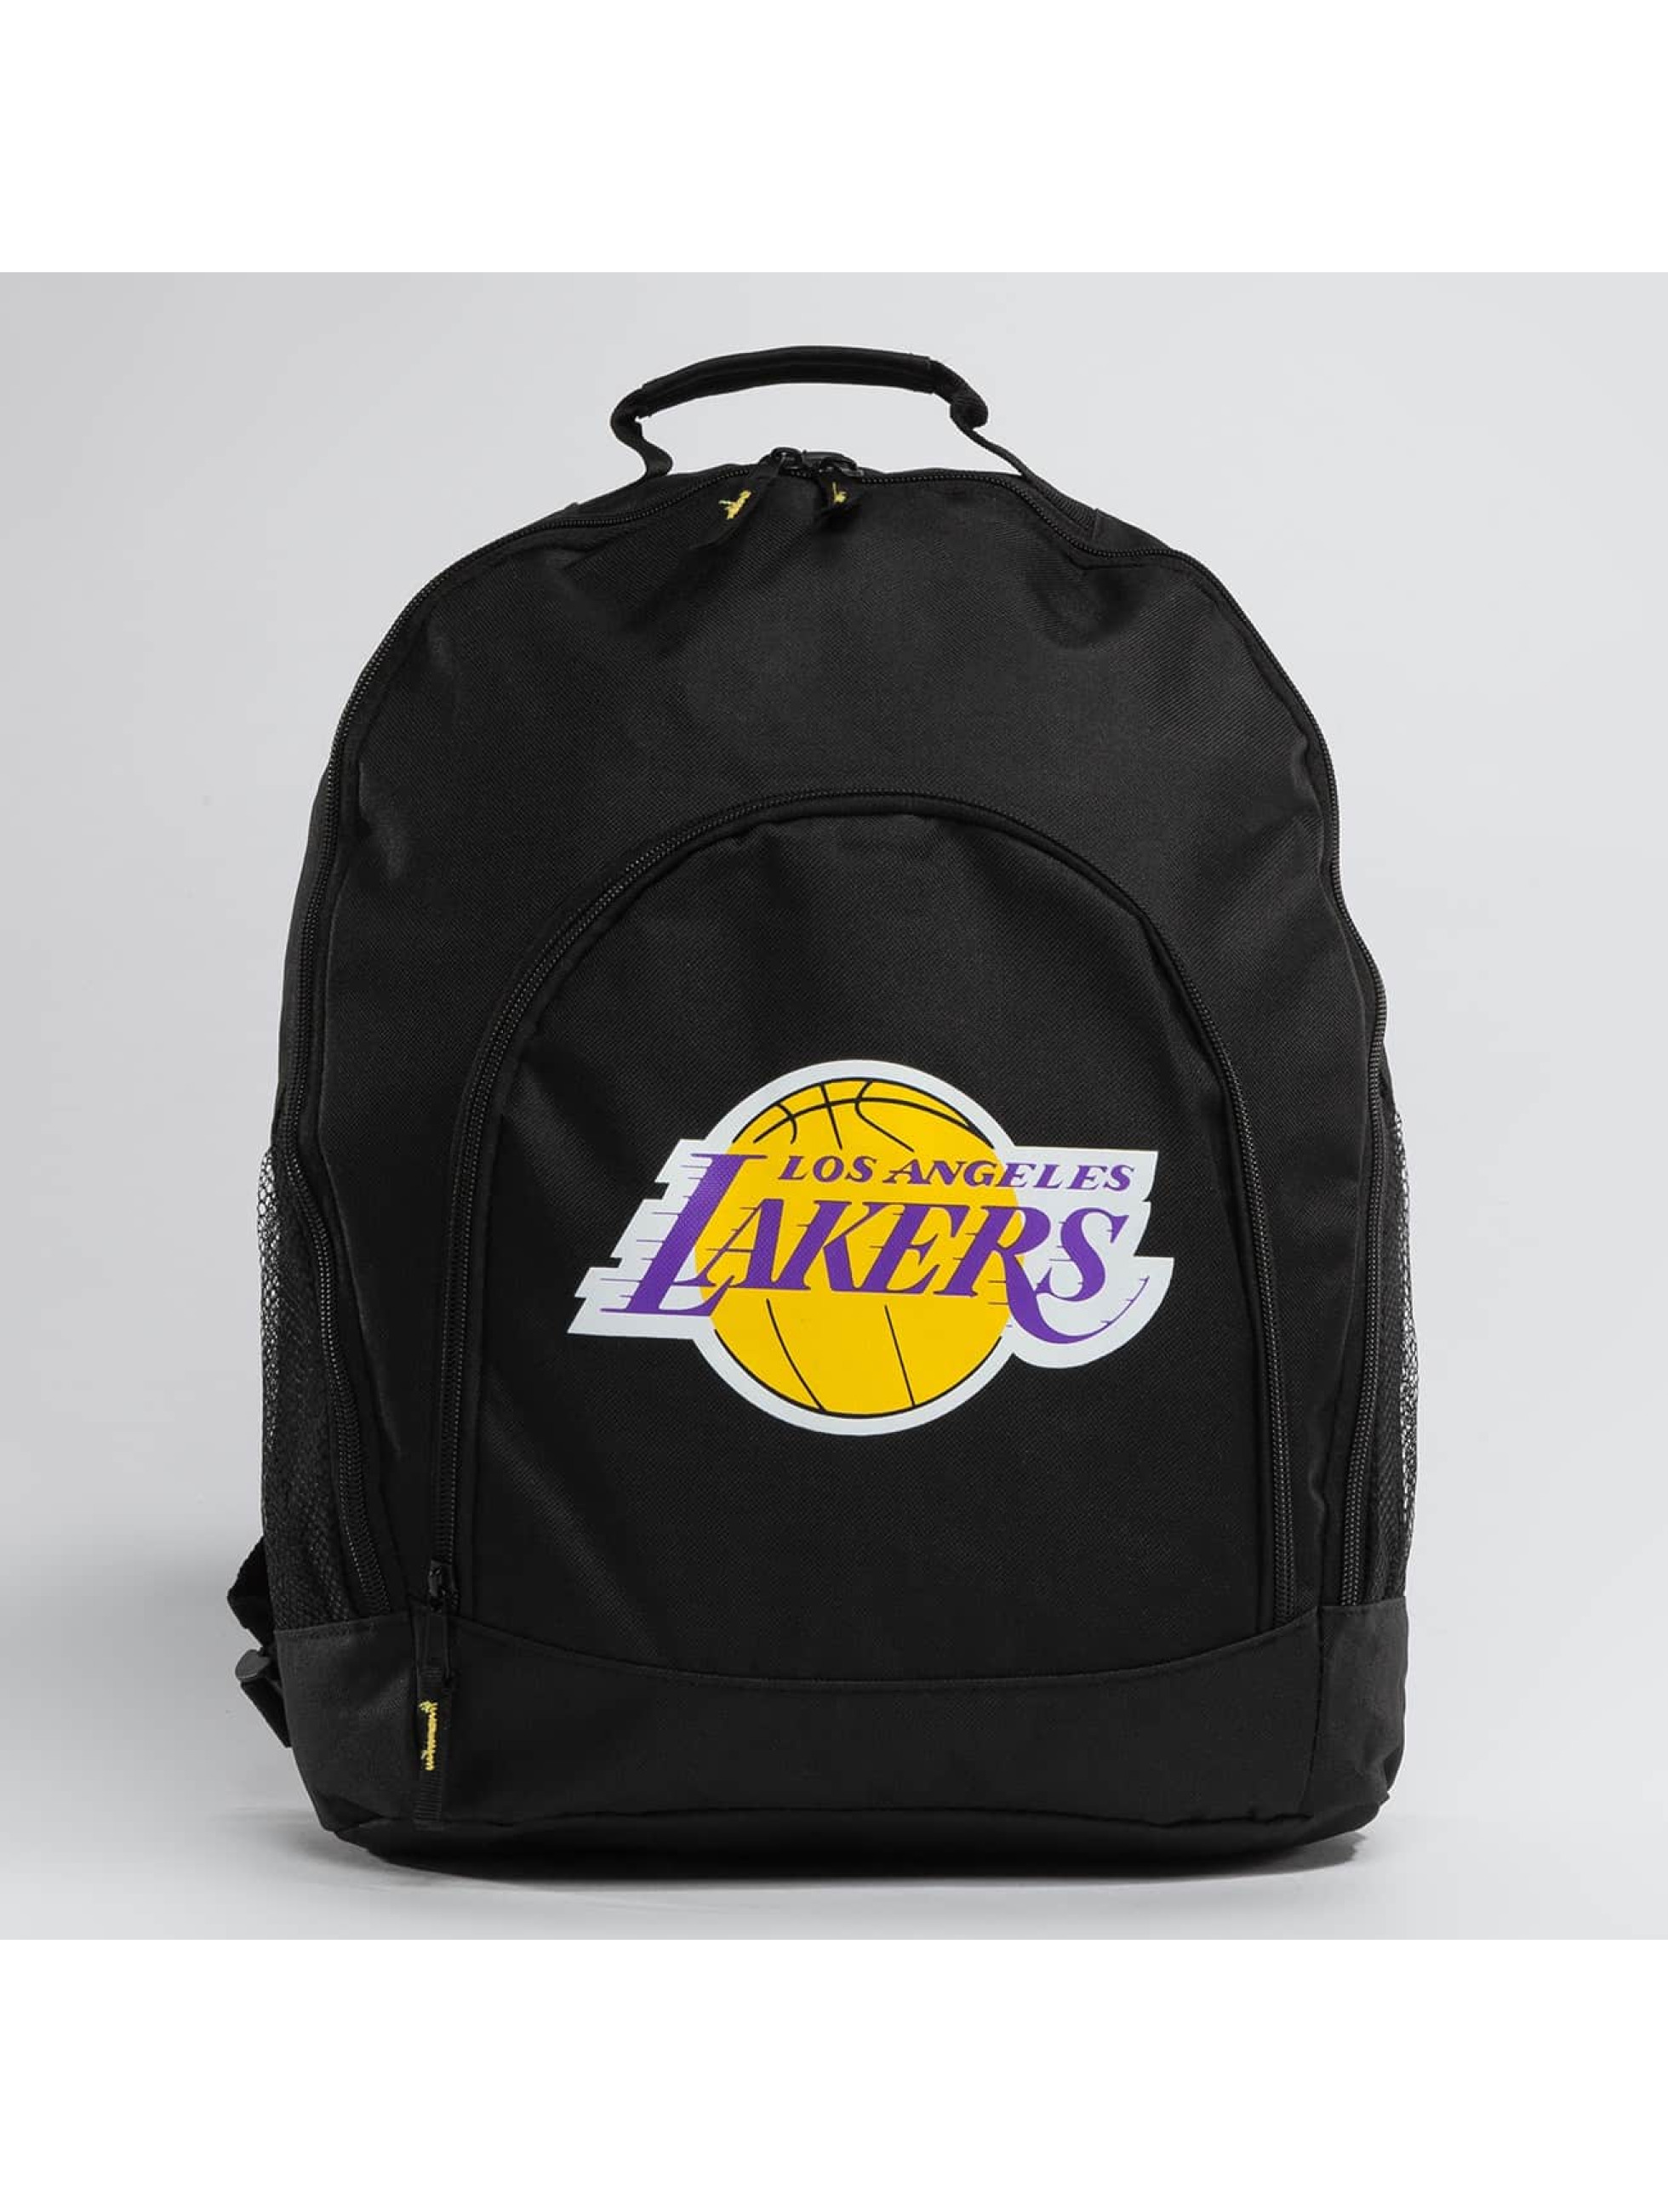 Forever Collectibles Sac à Dos NBA LA Lakers noir